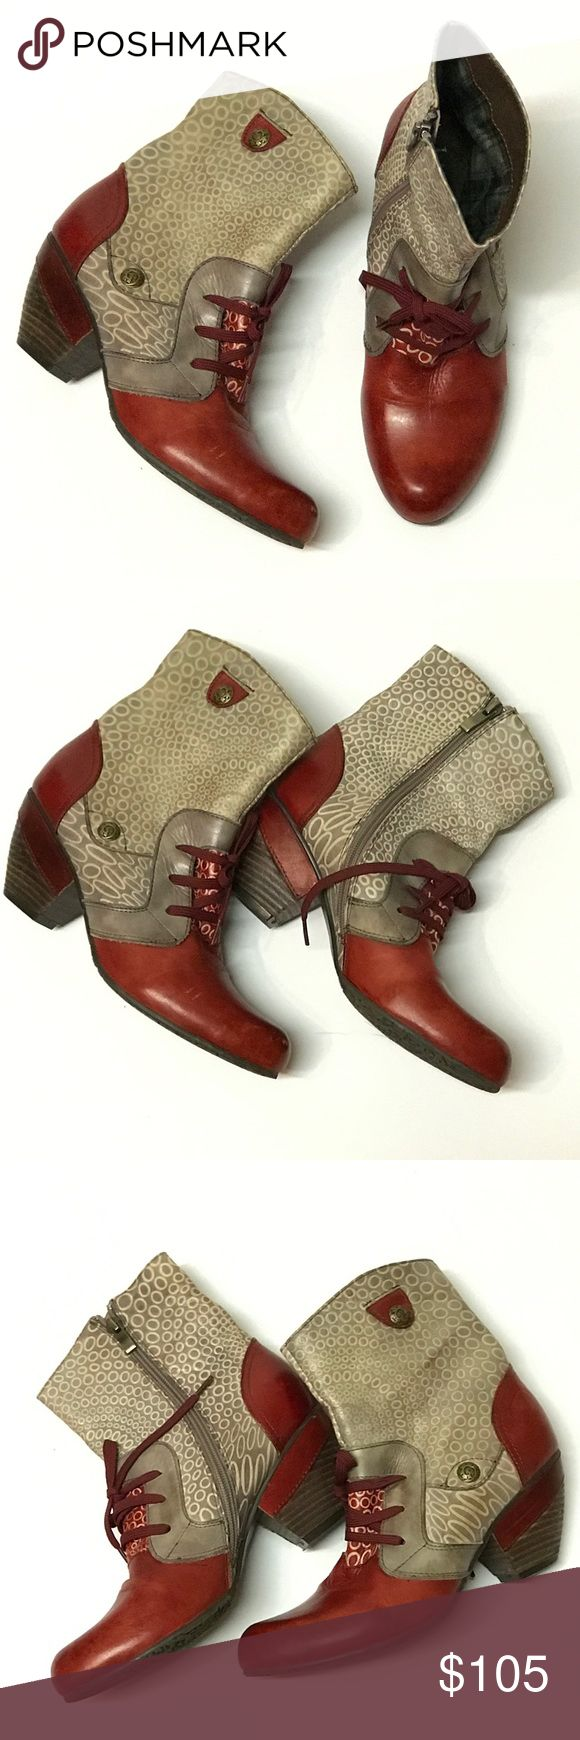 *RARE* Laura Vita Boots From France Very rare Laura Vita boots, purchased in France. Size 39 (9) and fits true to size. Red, gray and cream leather booties style. Shows some minor wear (see marks in photos) from normal usage but overall great condition! You will LOVE them! Laura Vita Shoes Ankle Boots & Booties